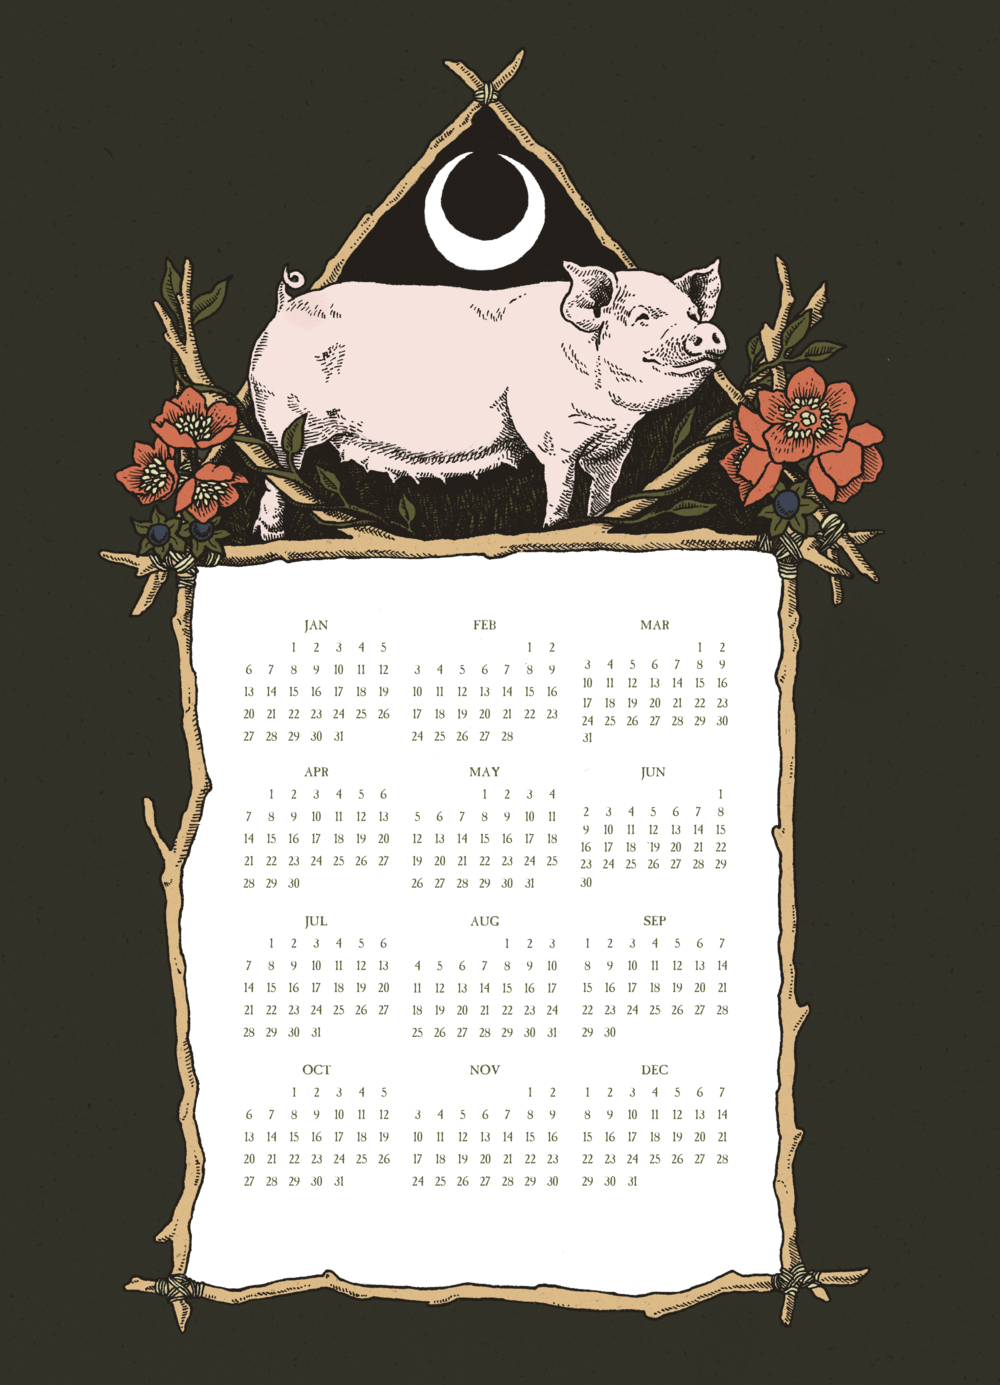 2019 Calendar Threadless Year of the Pig